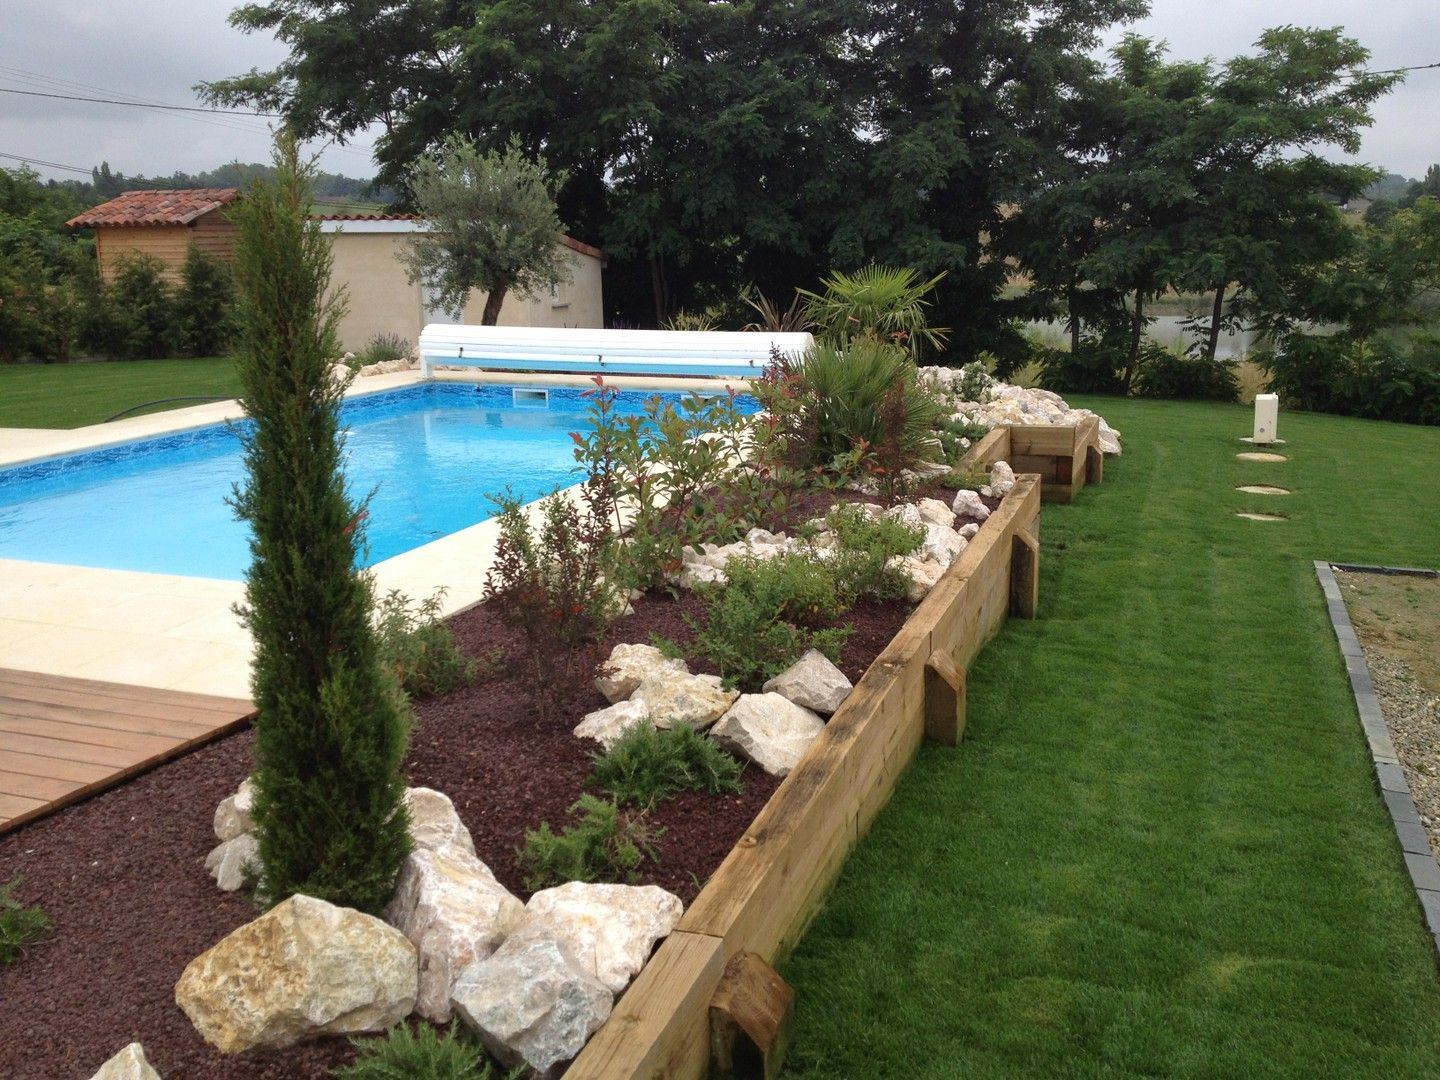 Am nagement tour de piscine piscines et bassins de for Amenagement jardin 77